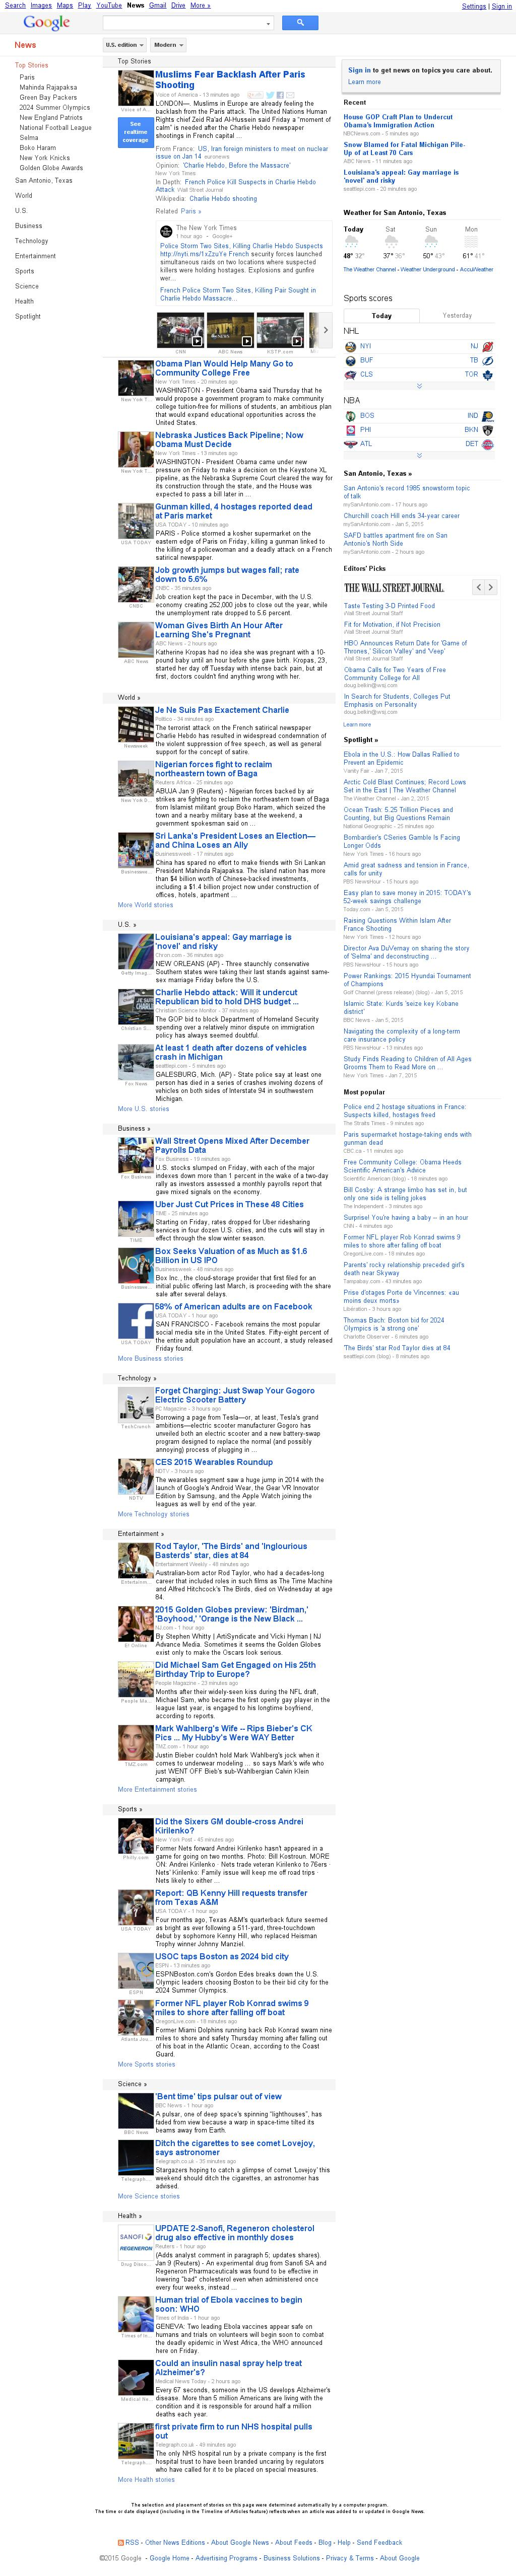 Google News at Friday Jan. 9, 2015, 6:09 p.m. UTC